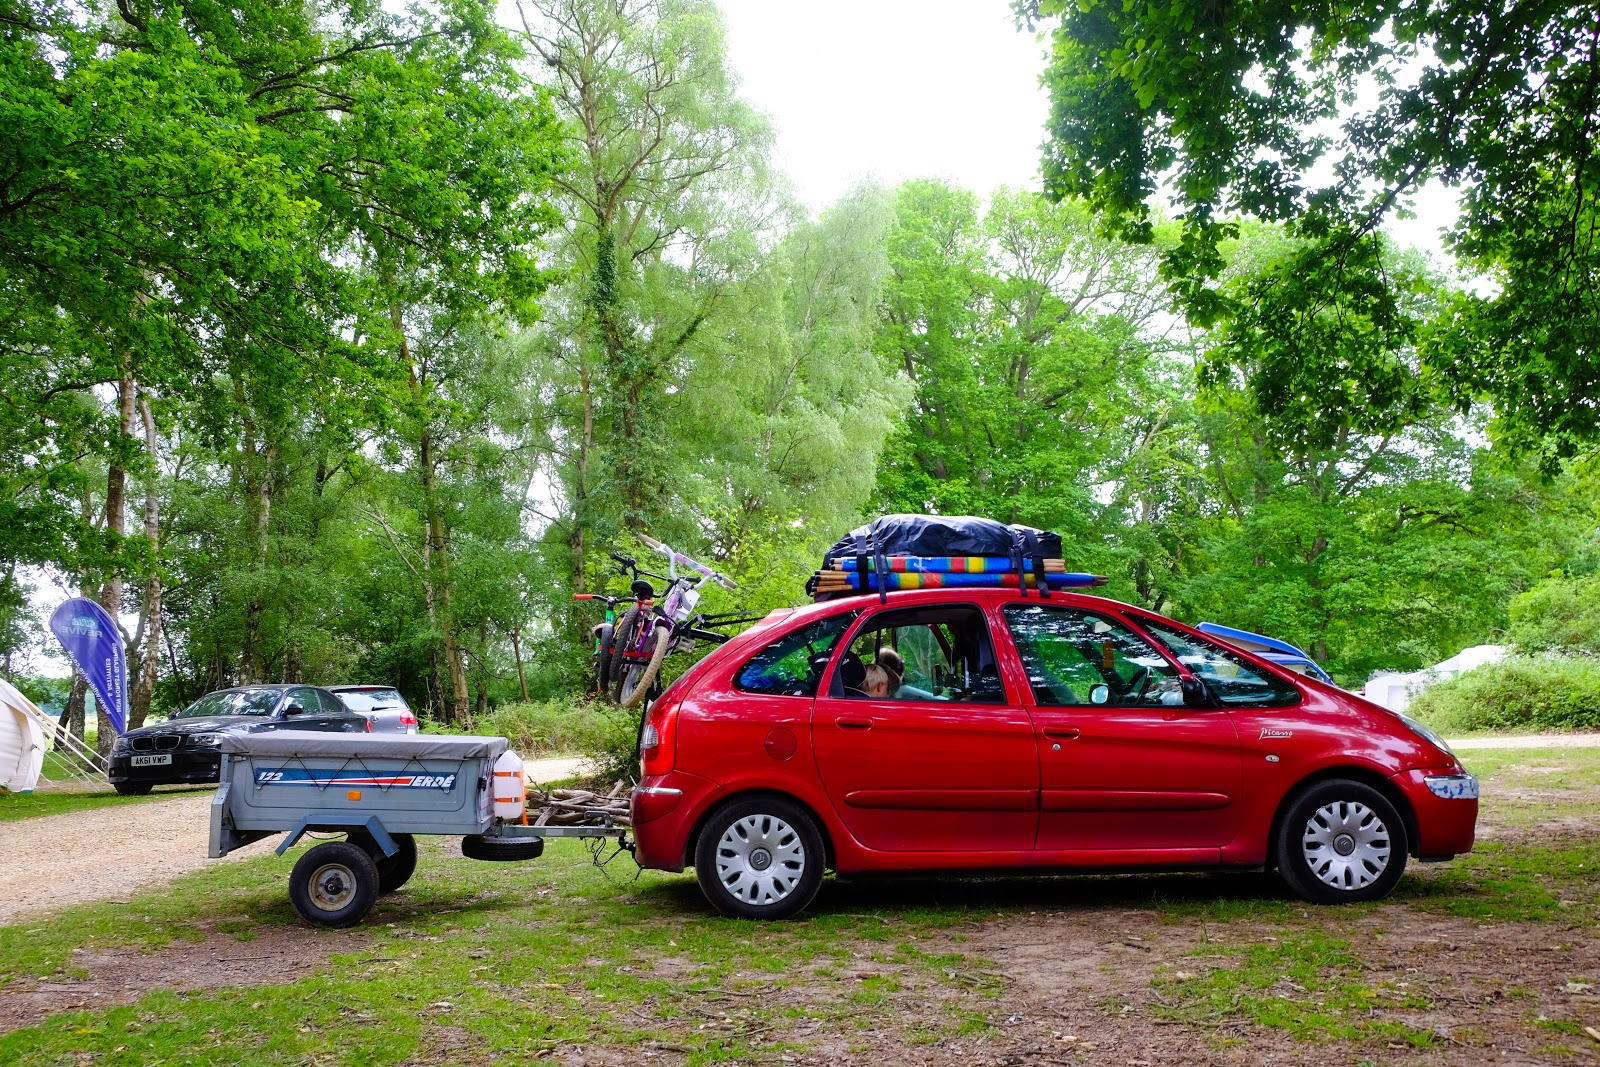 Camping at Hollands Wood Campsite New Forest